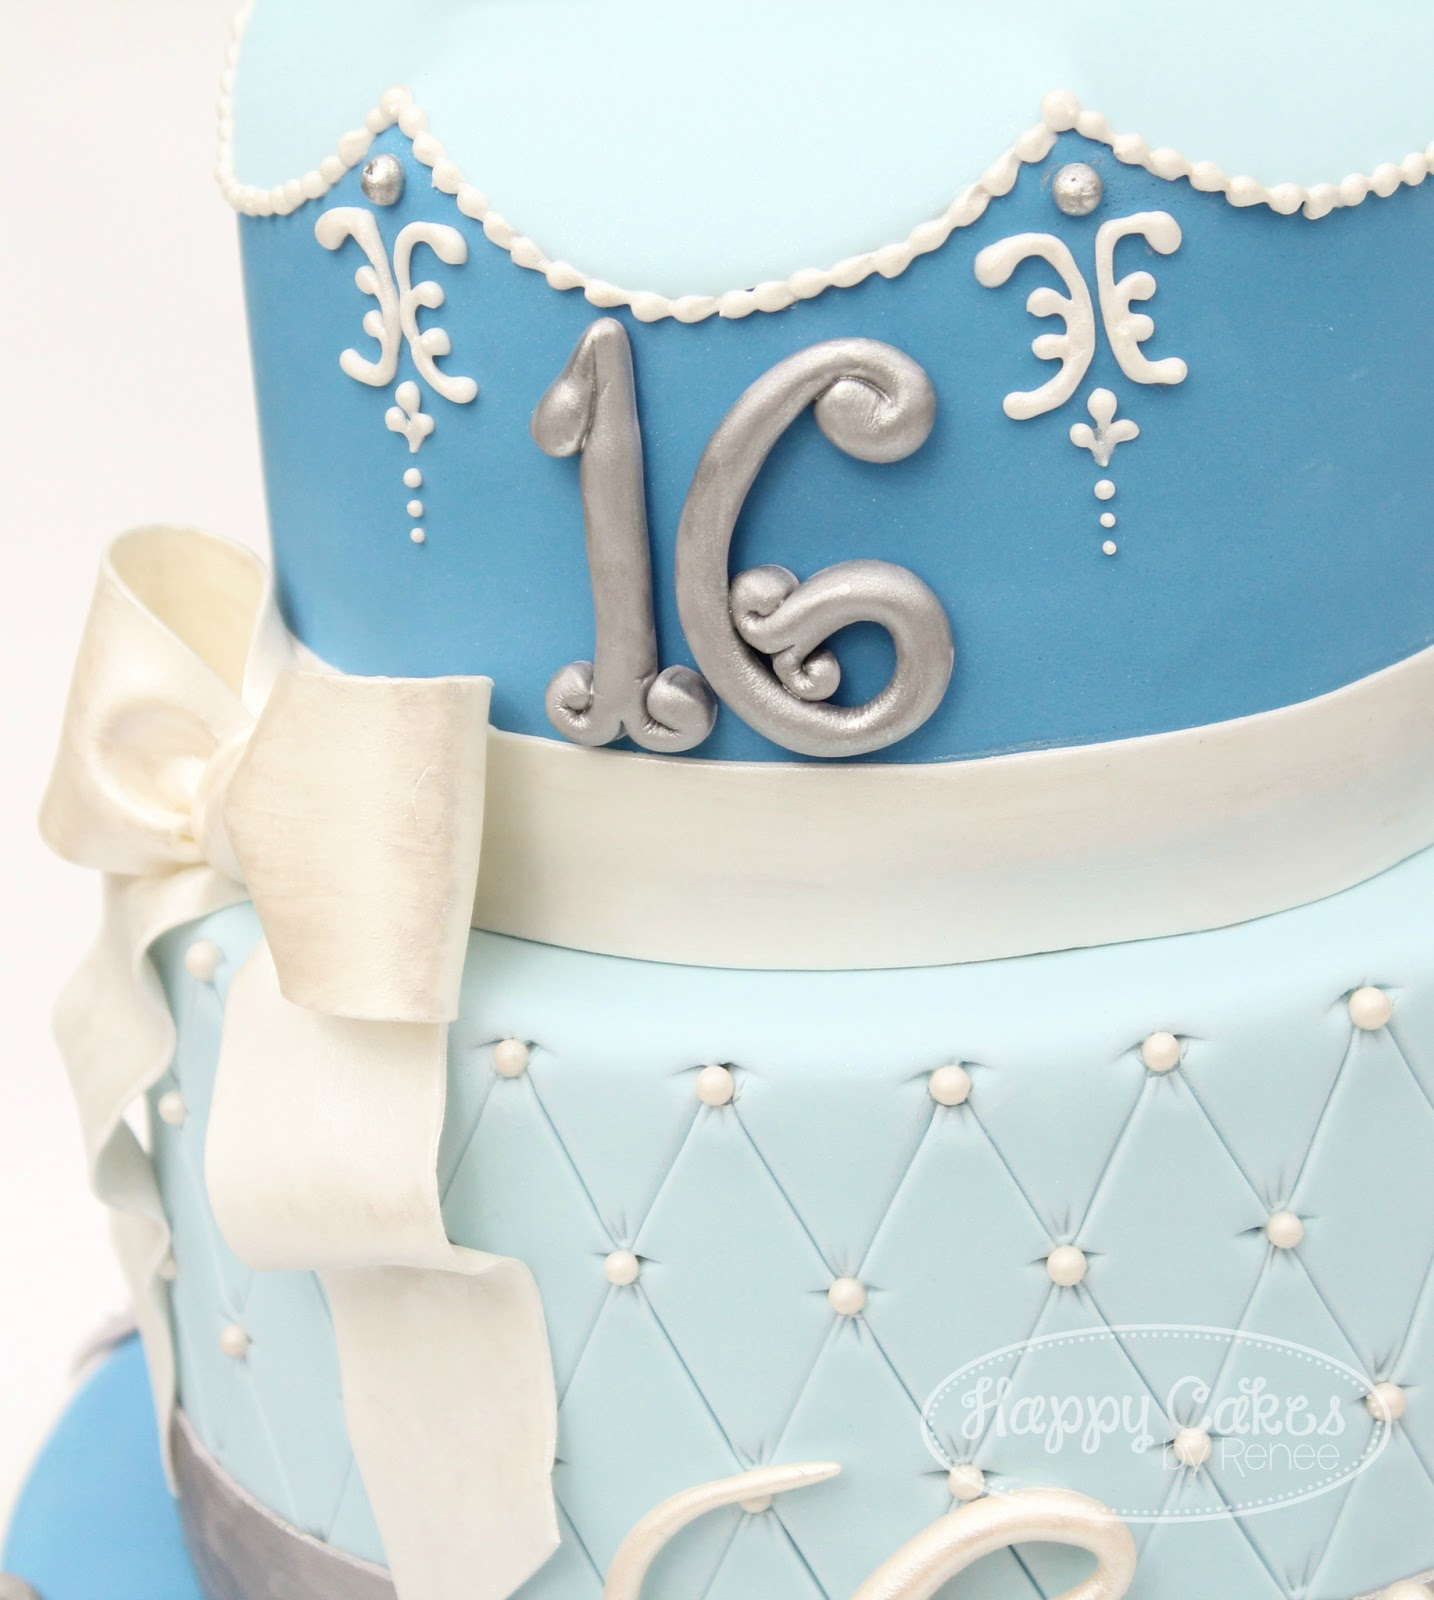 Cinderella Birthday Cakes Cinderella Sweet 16 Birthday Cake Renee Conner Cake Design